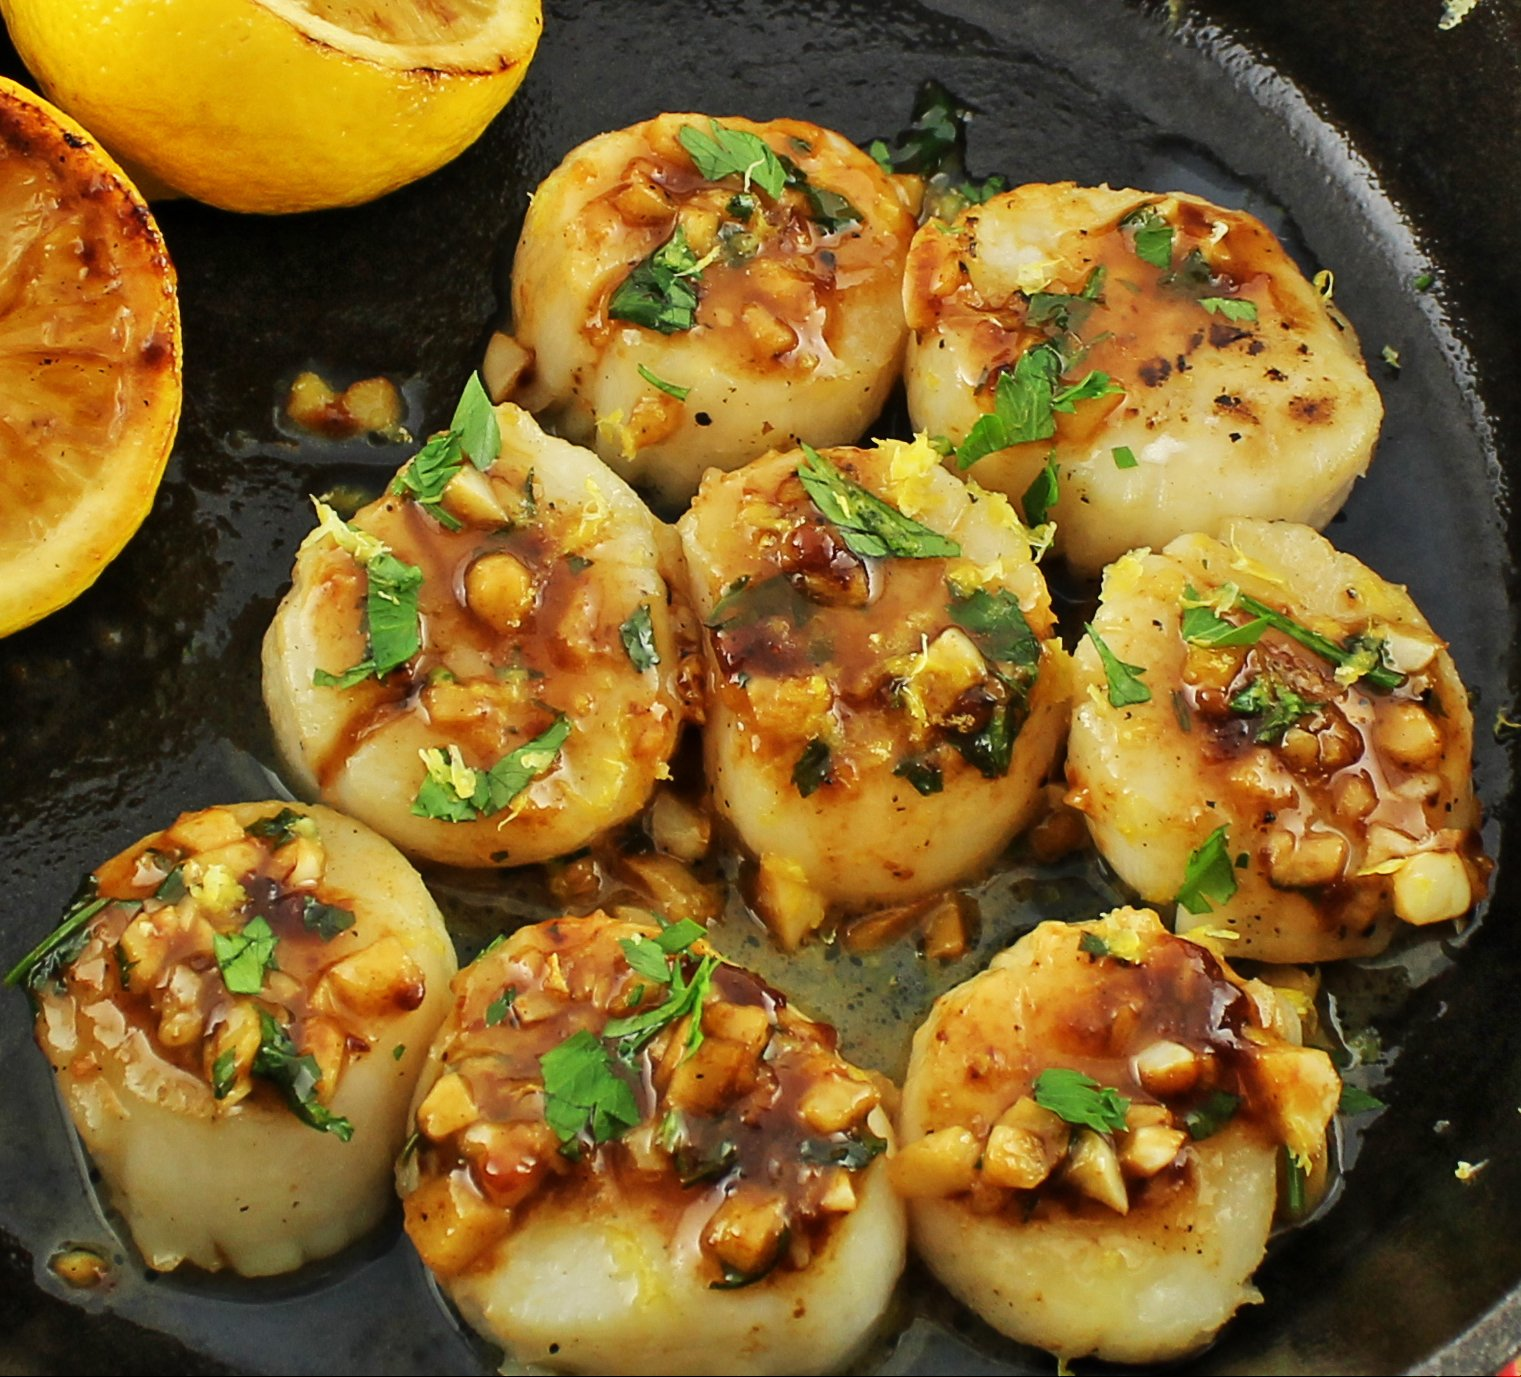 Weight Watcher friendly scallop recipe that is decadent and easy to make. Seared Brown Butter Lemon Scallops are only 5 SmartPoints for 4 scallops!